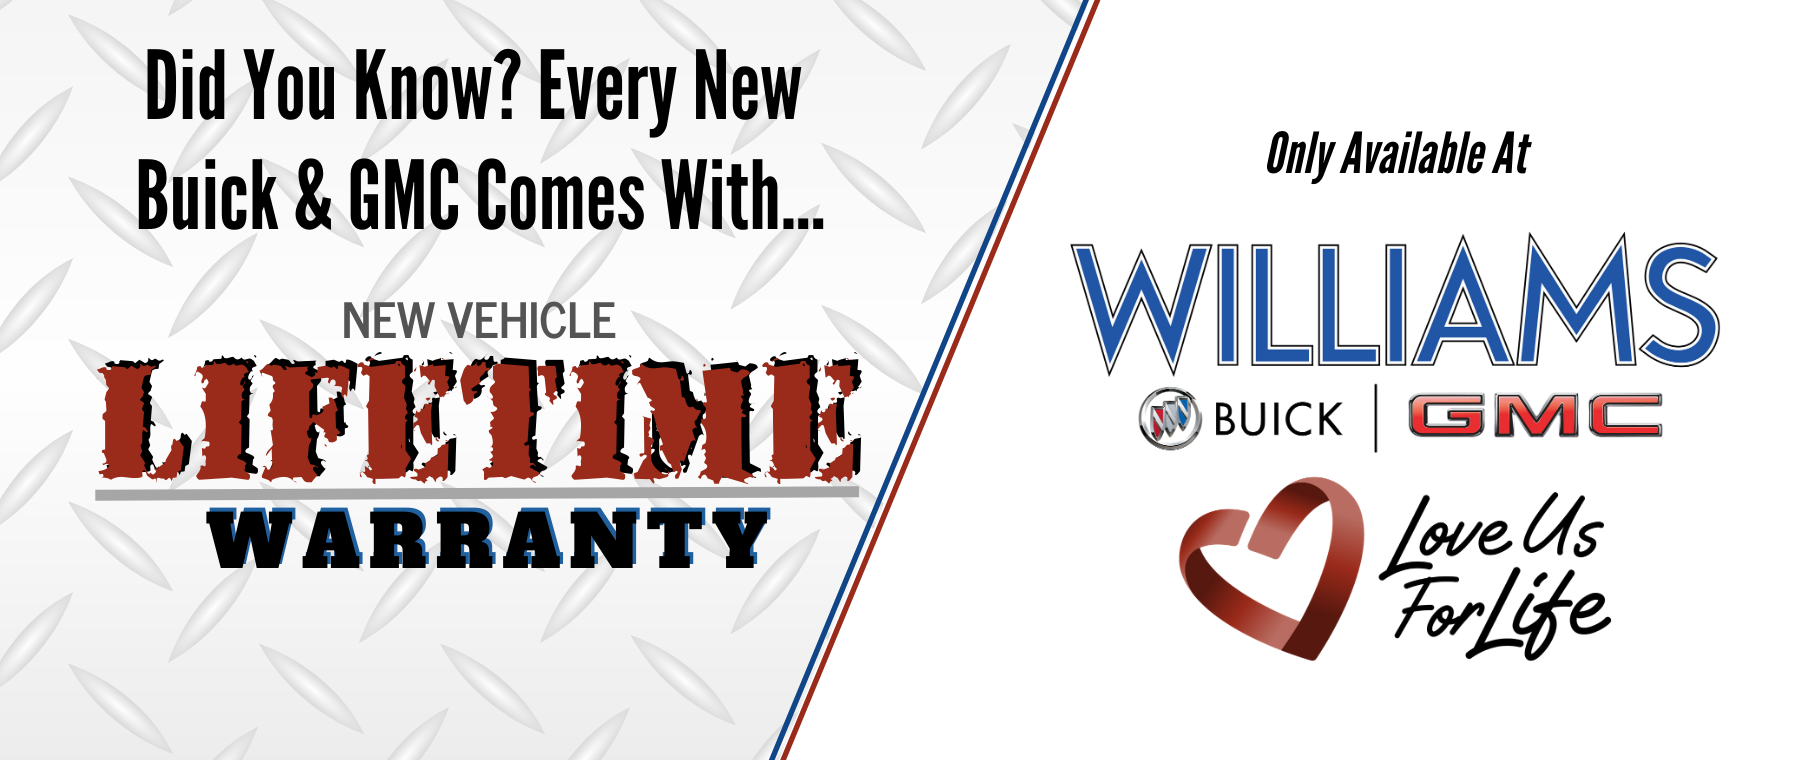 Lifetime Warranty Available at Williams Buick GMC in Charlotte, NC